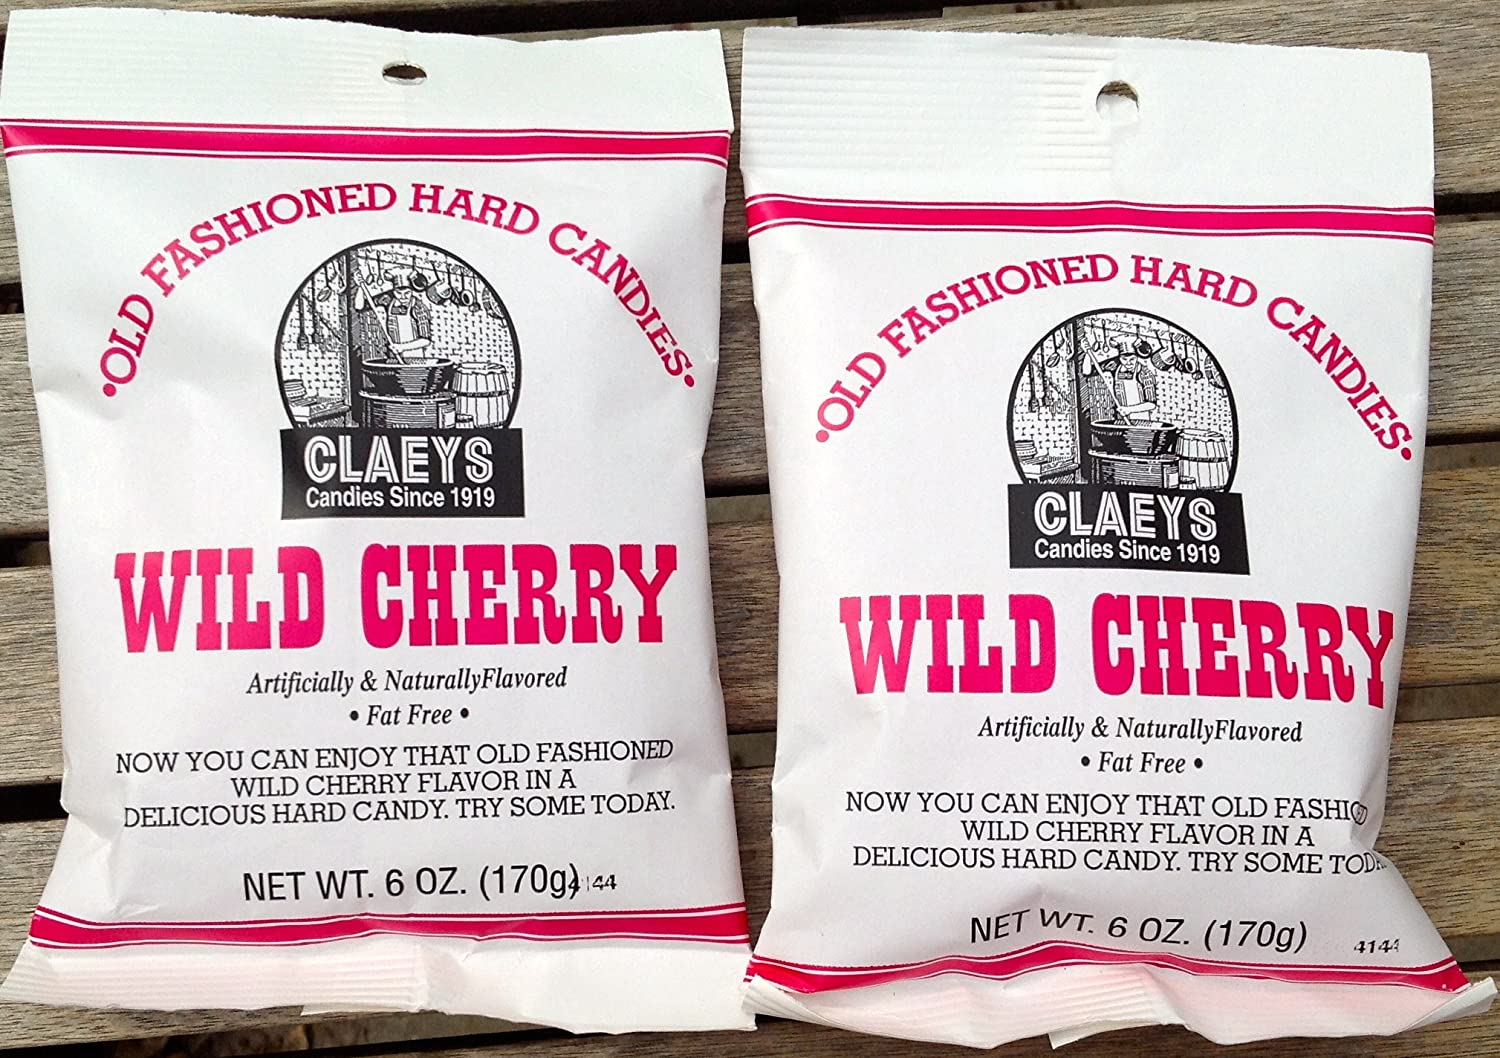 Claeys Wild Cherry Flavored Old Fashioned Hard Candy - (2 X 6oz Bags)